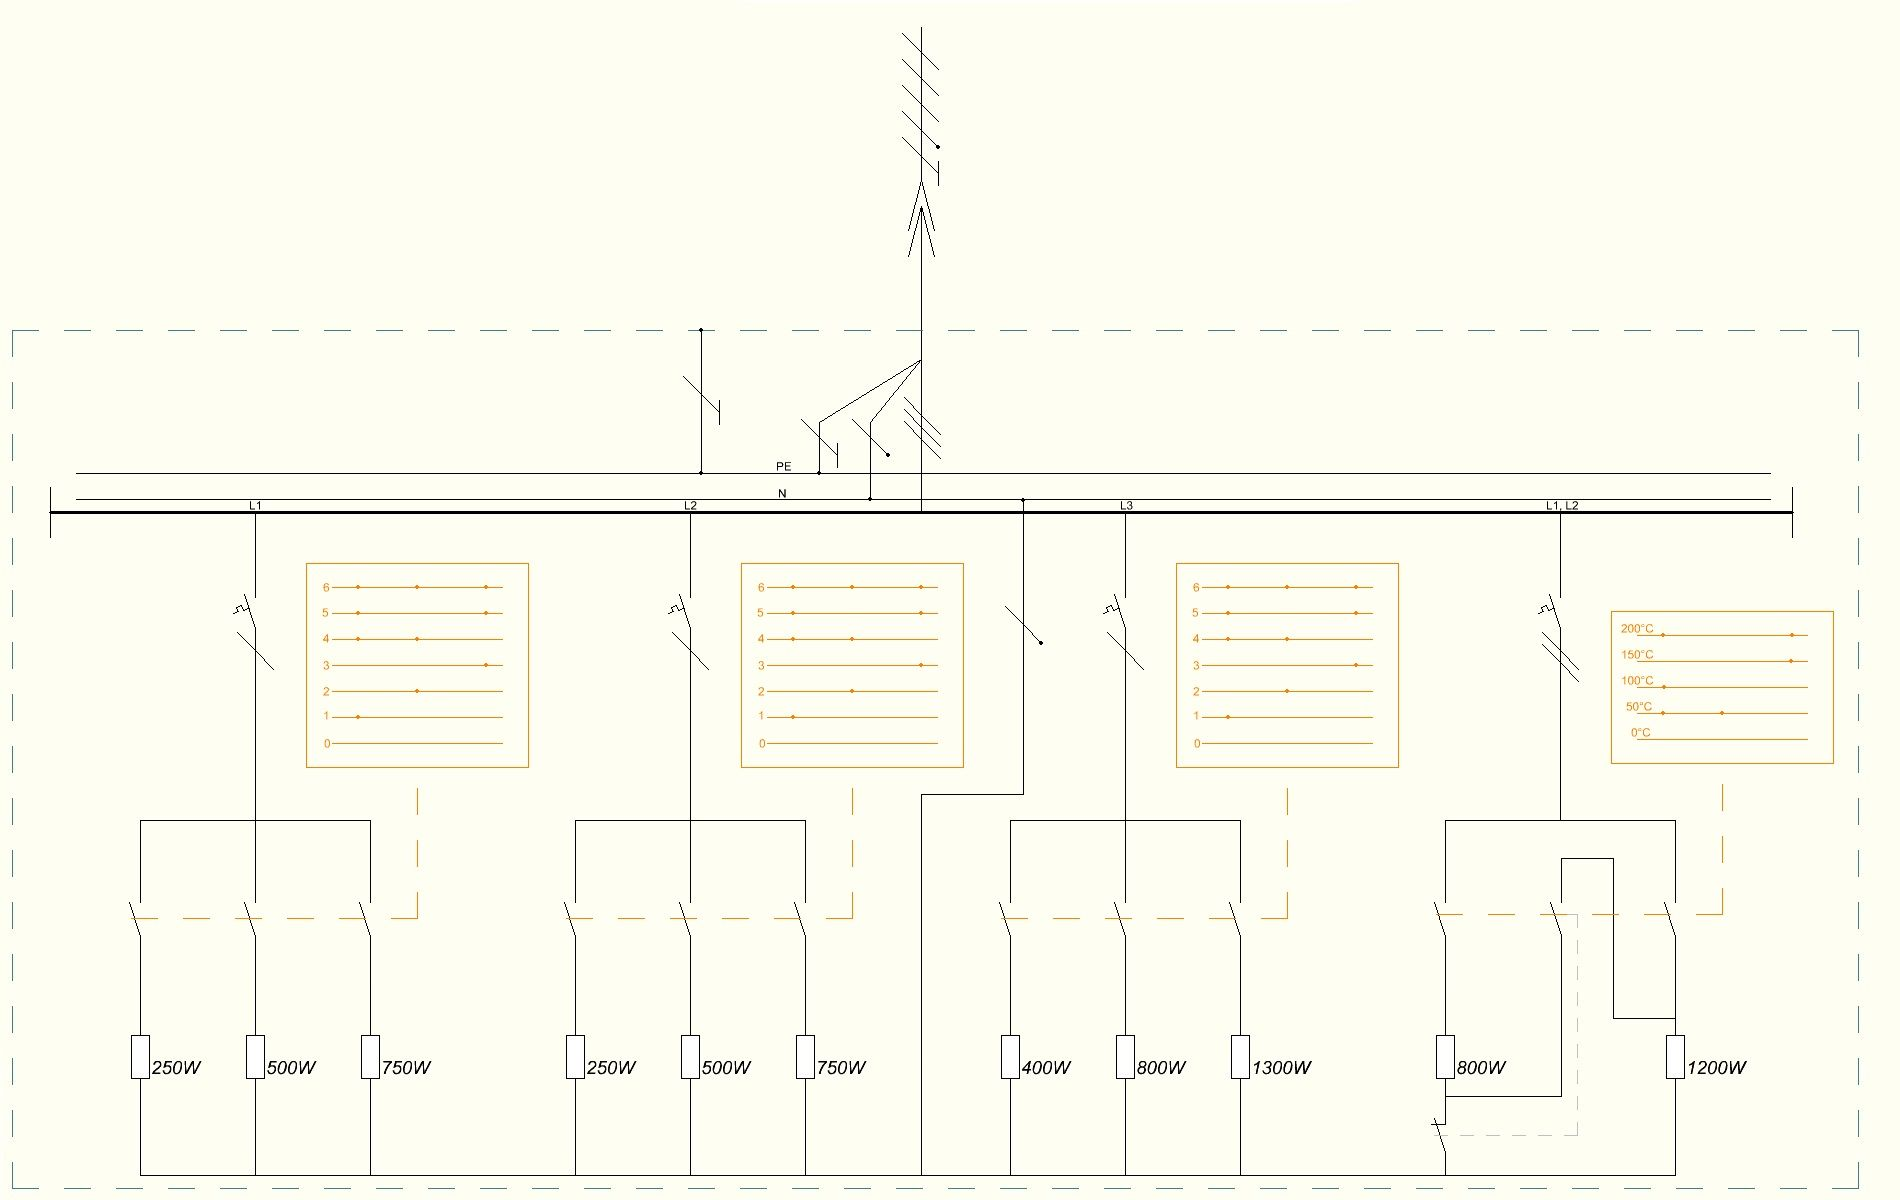 24 Wiring Diagram For Electric Stove Bookingritzcarlton Info Electric Cooker Electric Stove Electric Oven And Hob